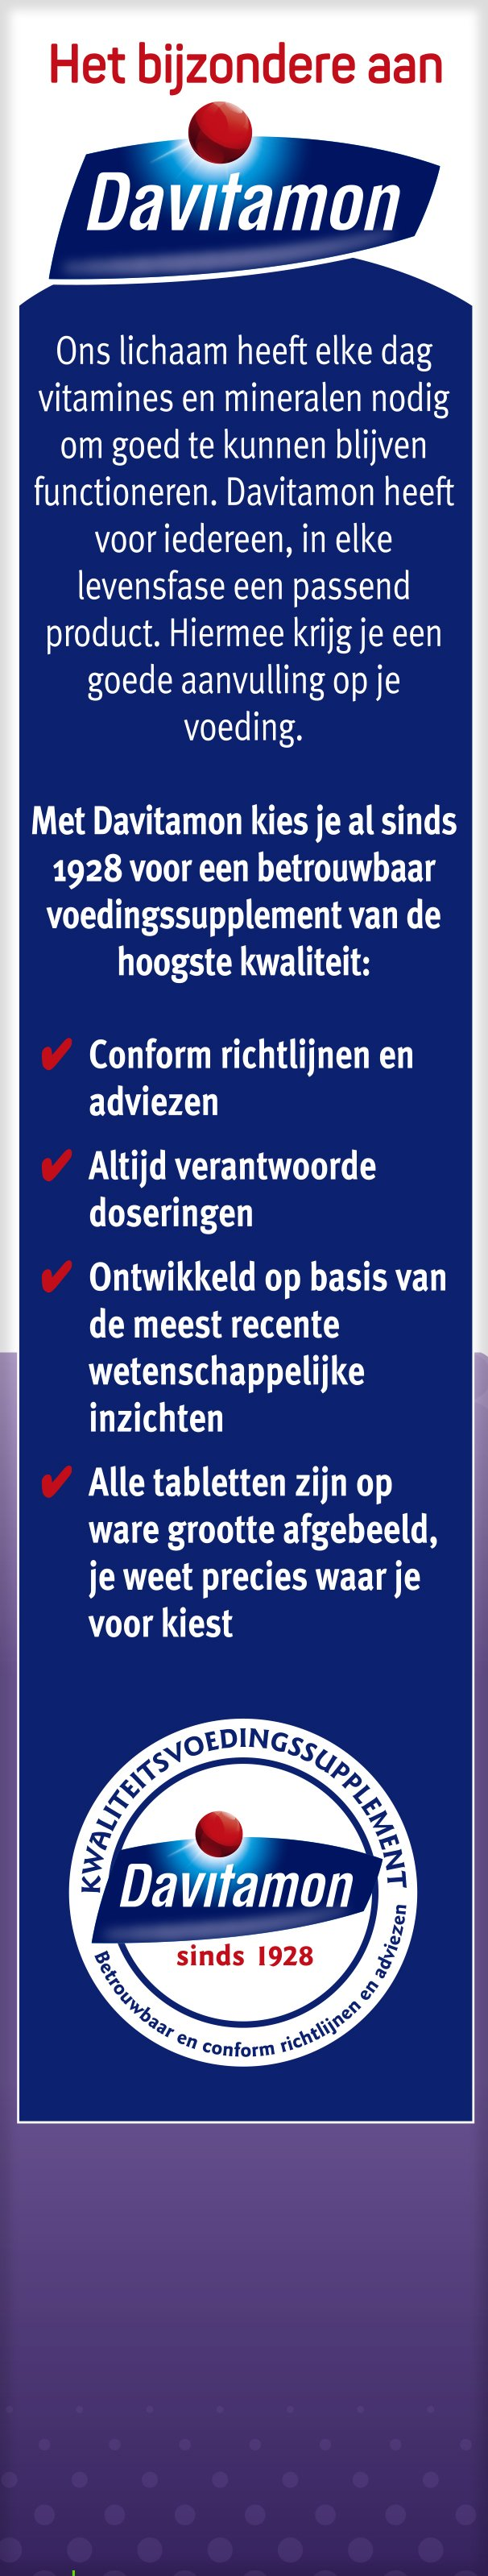 Davitamon Vitamine D week tabletten voordelen